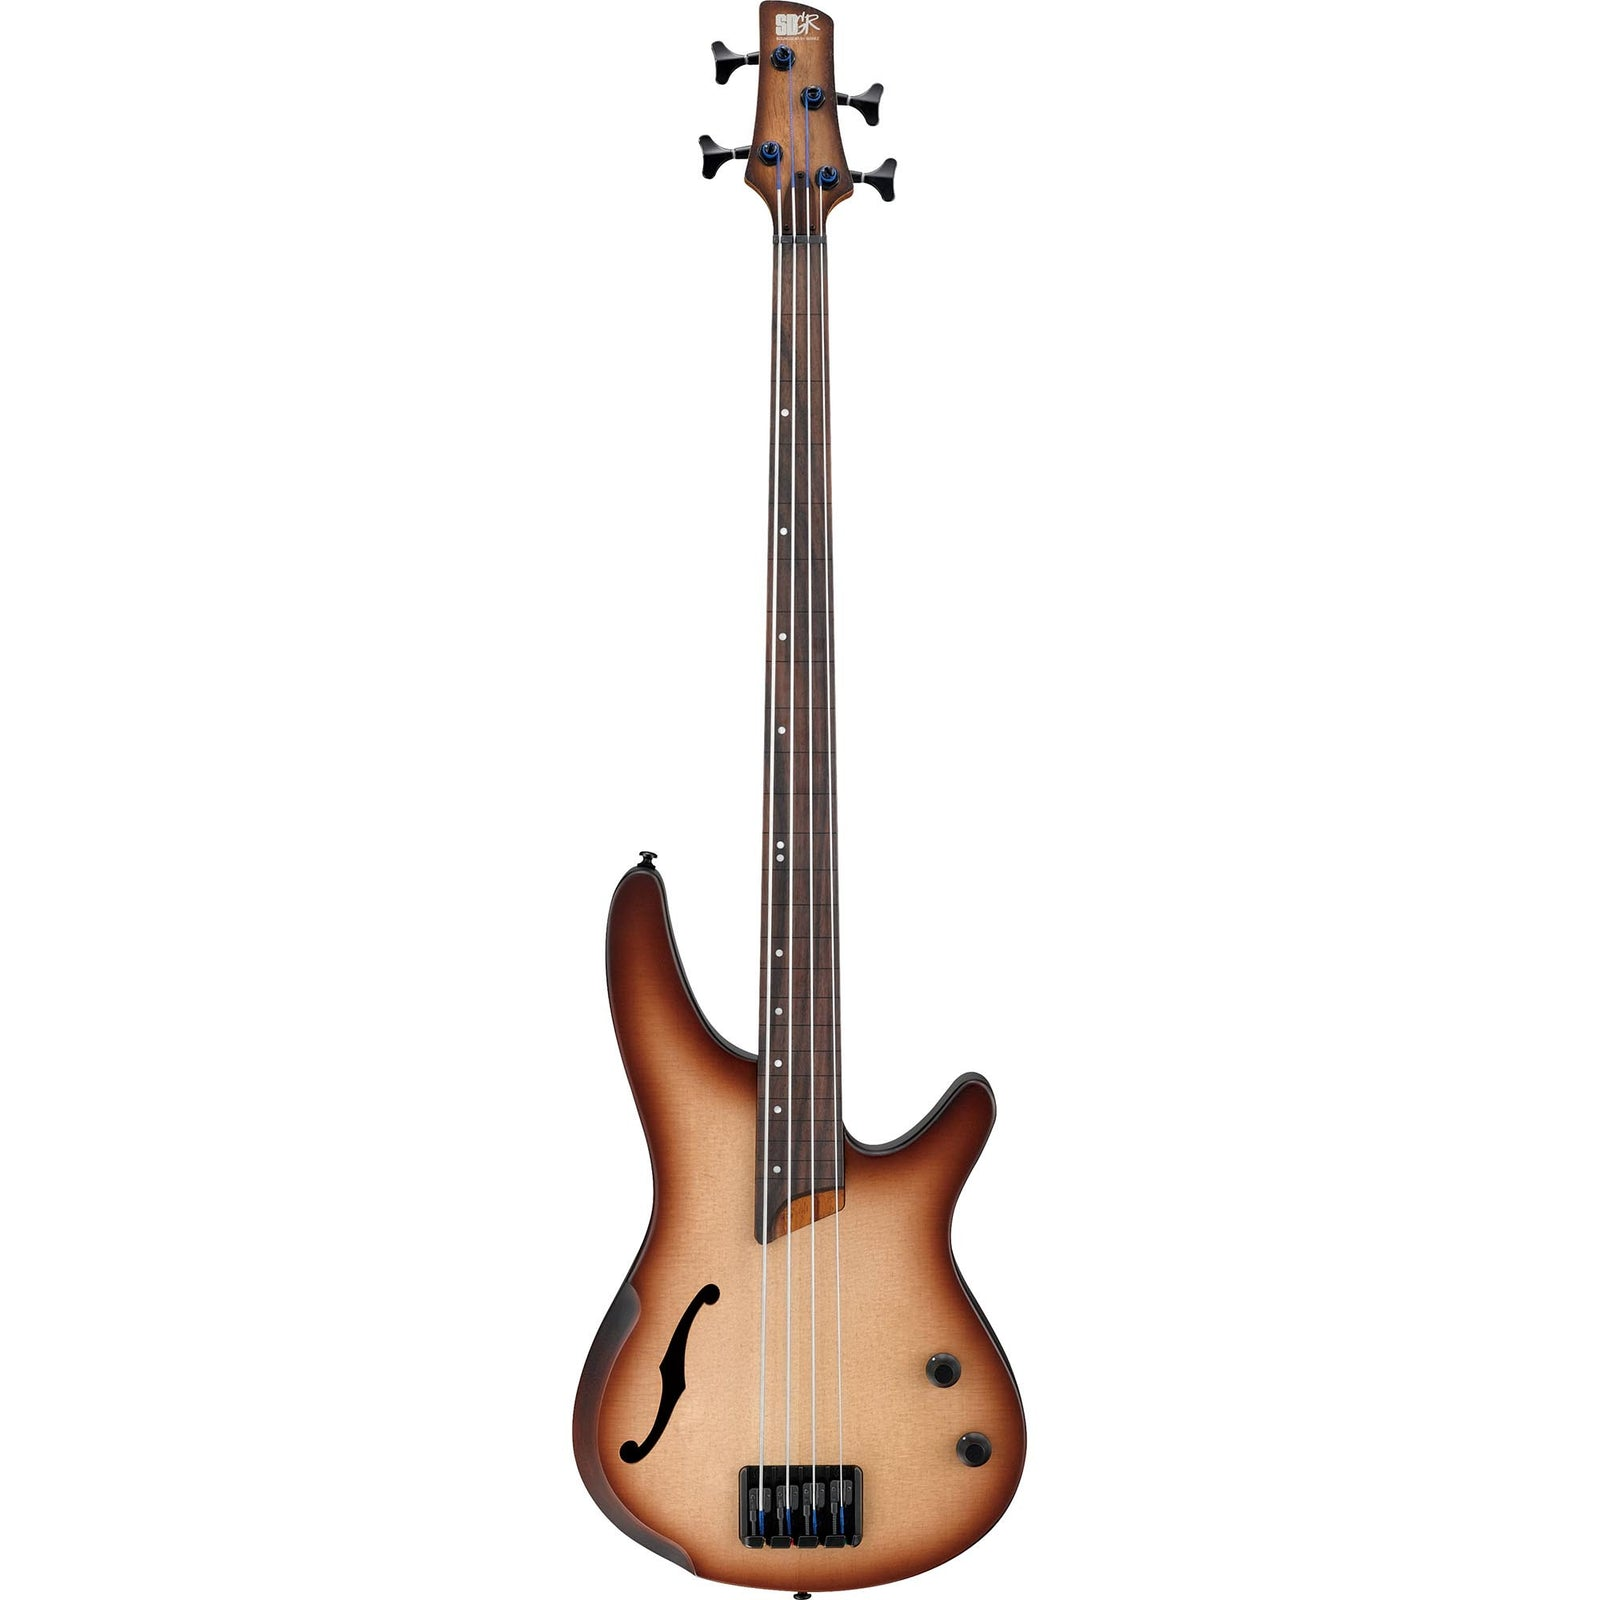 Ibanez Bass Workshop - Fretless Hollowbody - Natural Browned Burst